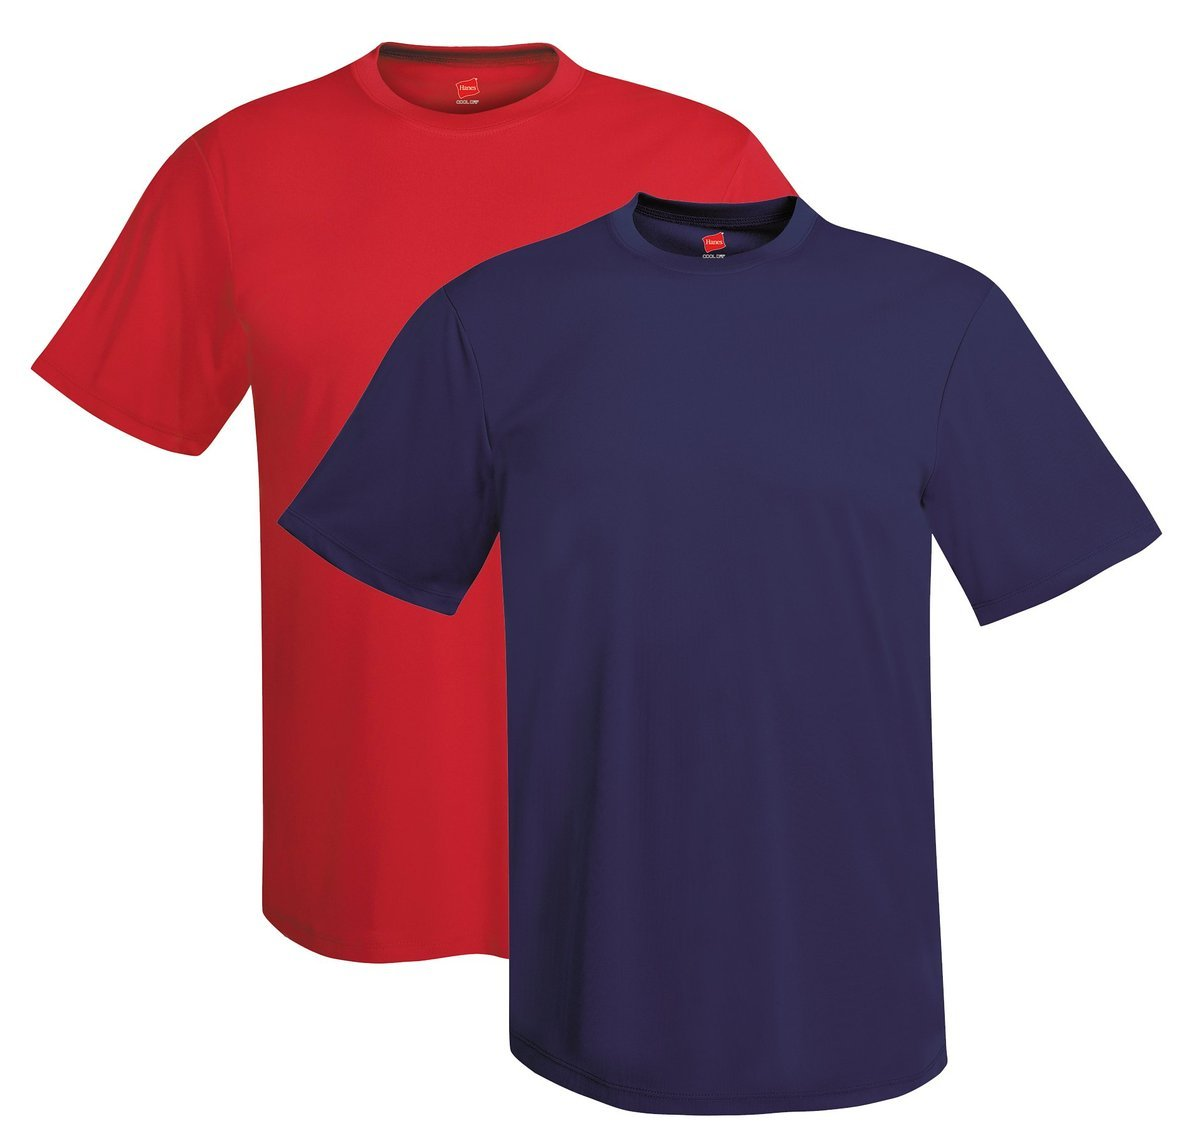 Hanes Men's Short Sleeve Cooldri Tee O4820